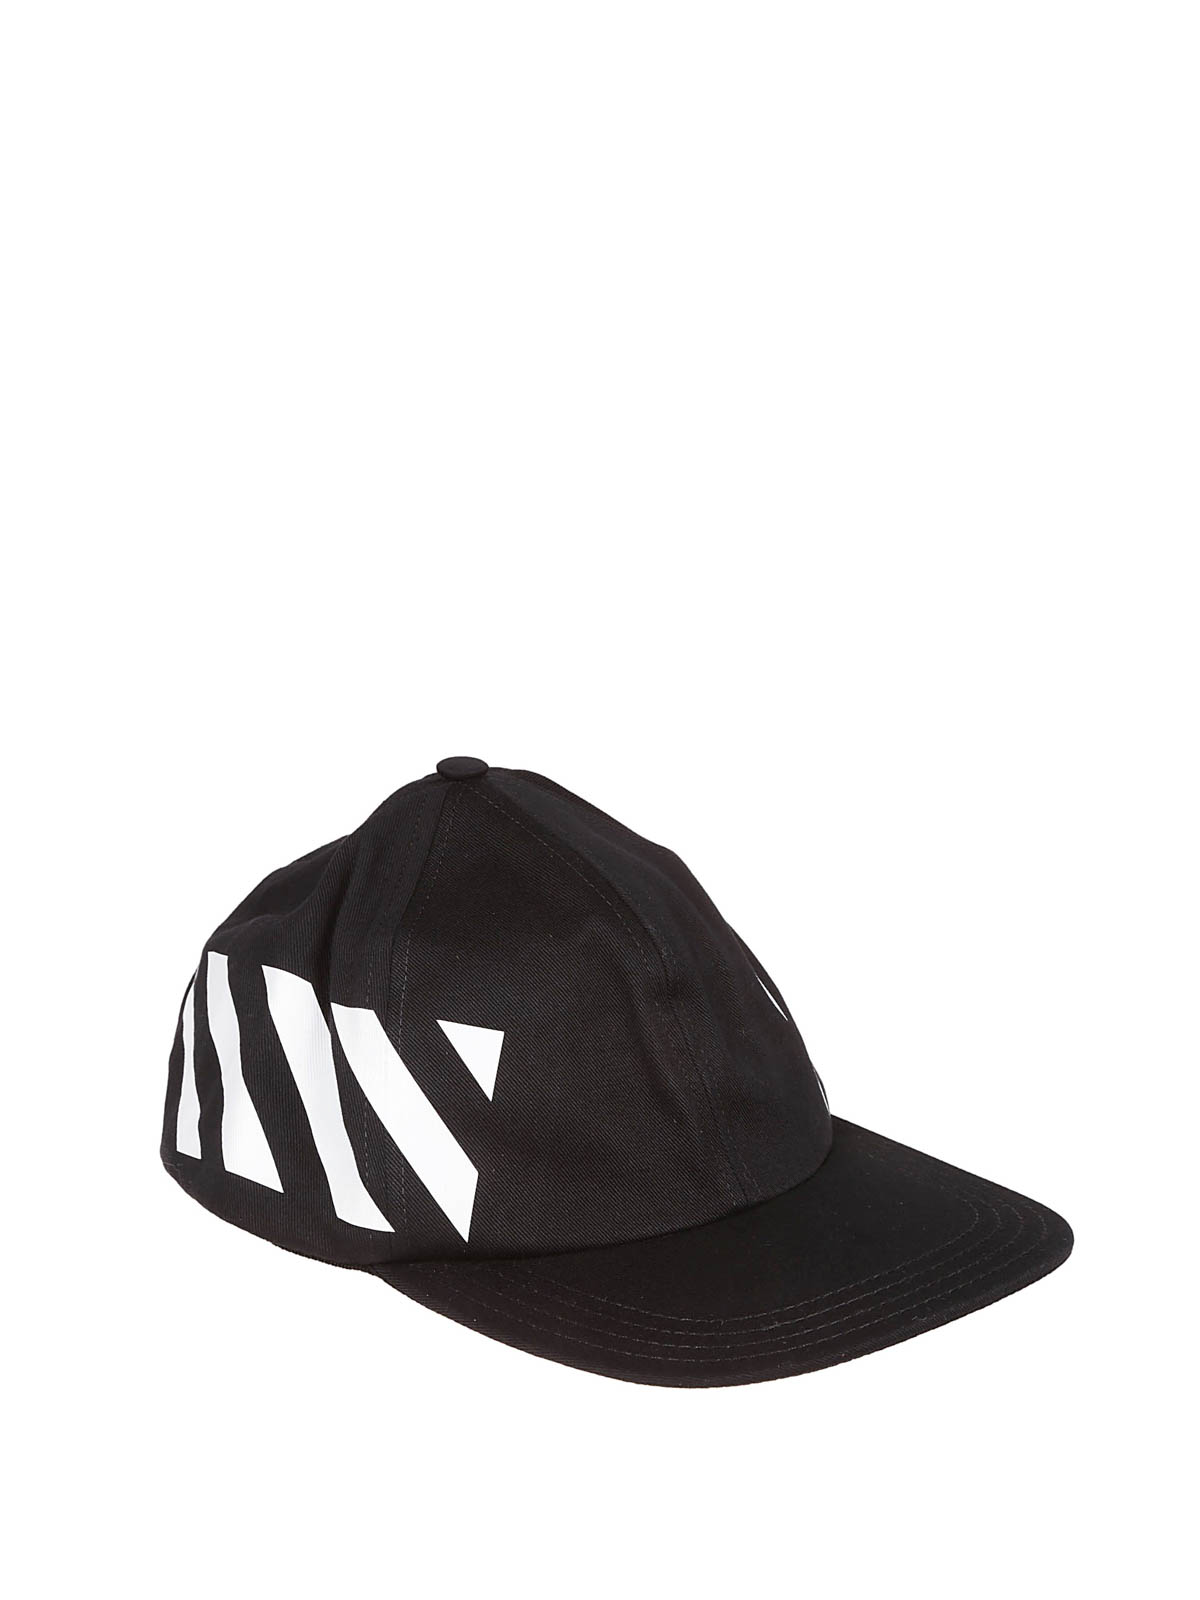 0a3f3968a92 Off-White - Diag black baseball cap - hats   caps - OMLB008R194000321001